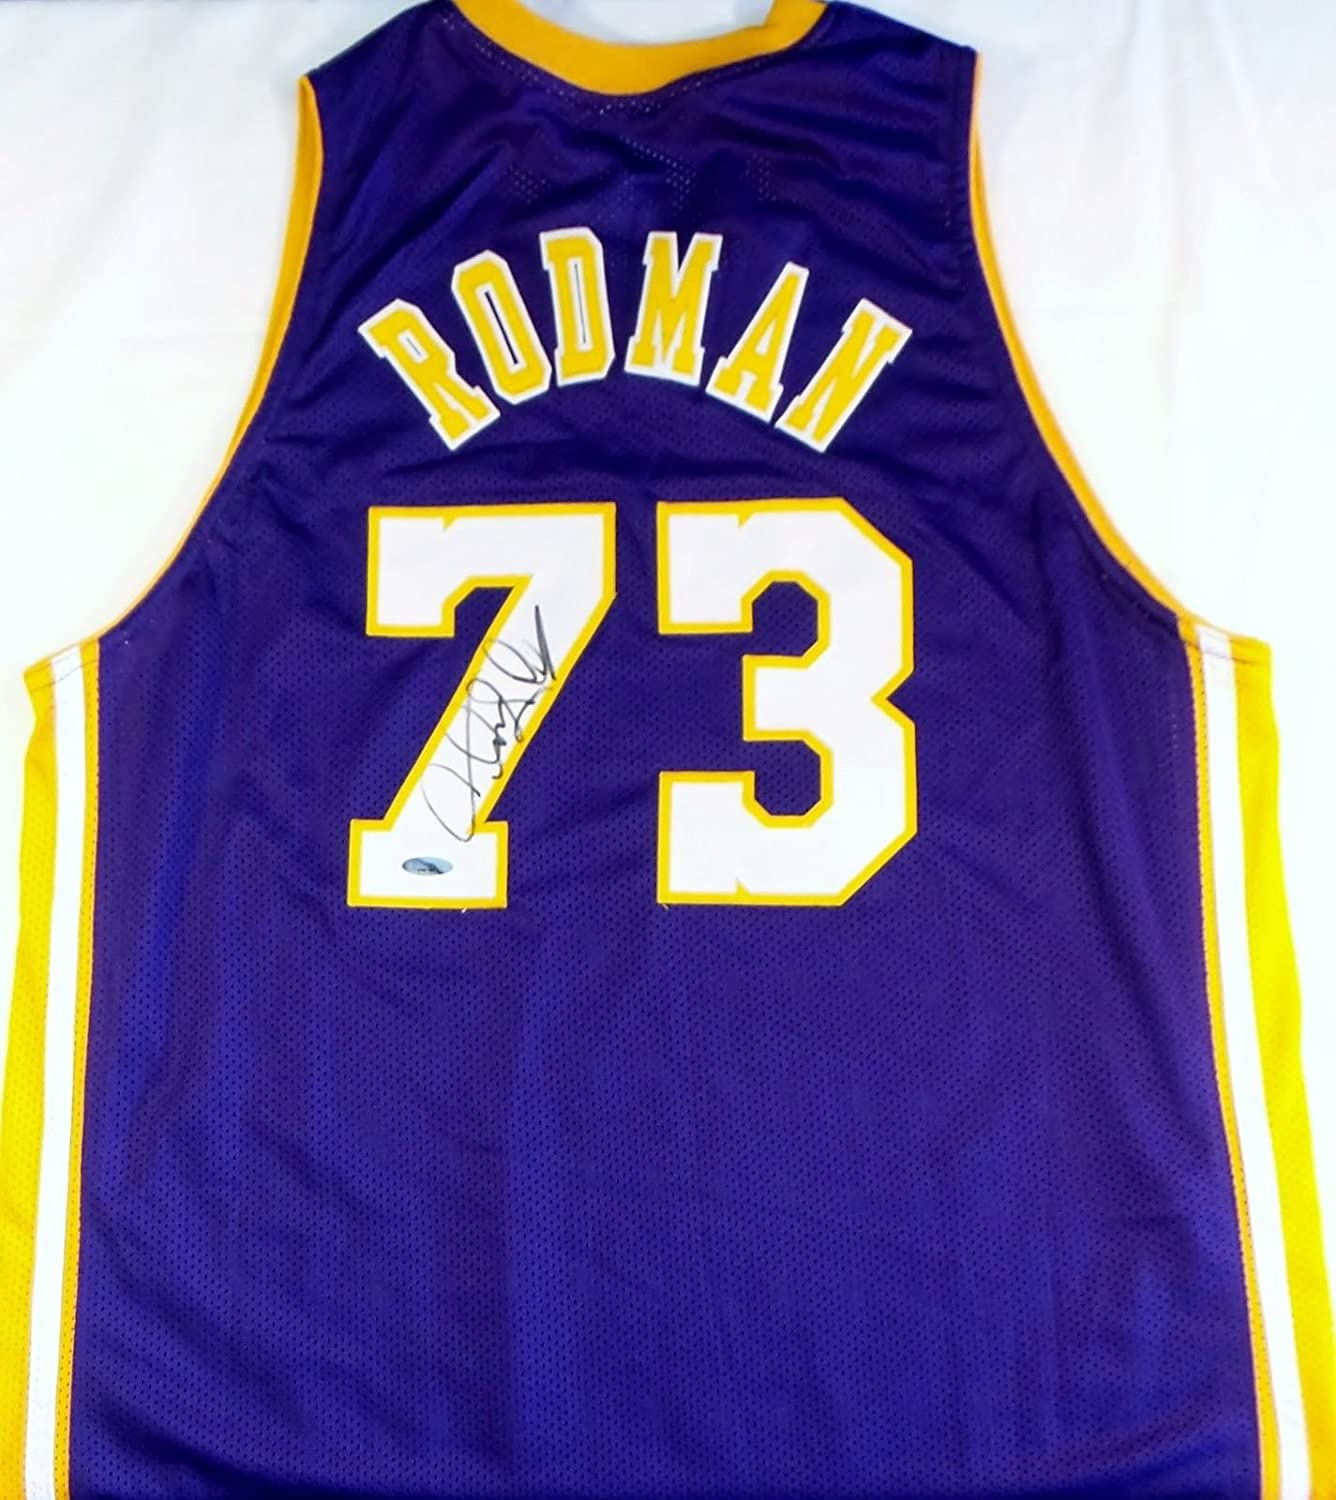 4f76d0f78 ... Dennis Rodman Signed Autographed Los Angeles Lakers Basketball Jersey  (TriStar Authenticated) at Amazons Sports ...